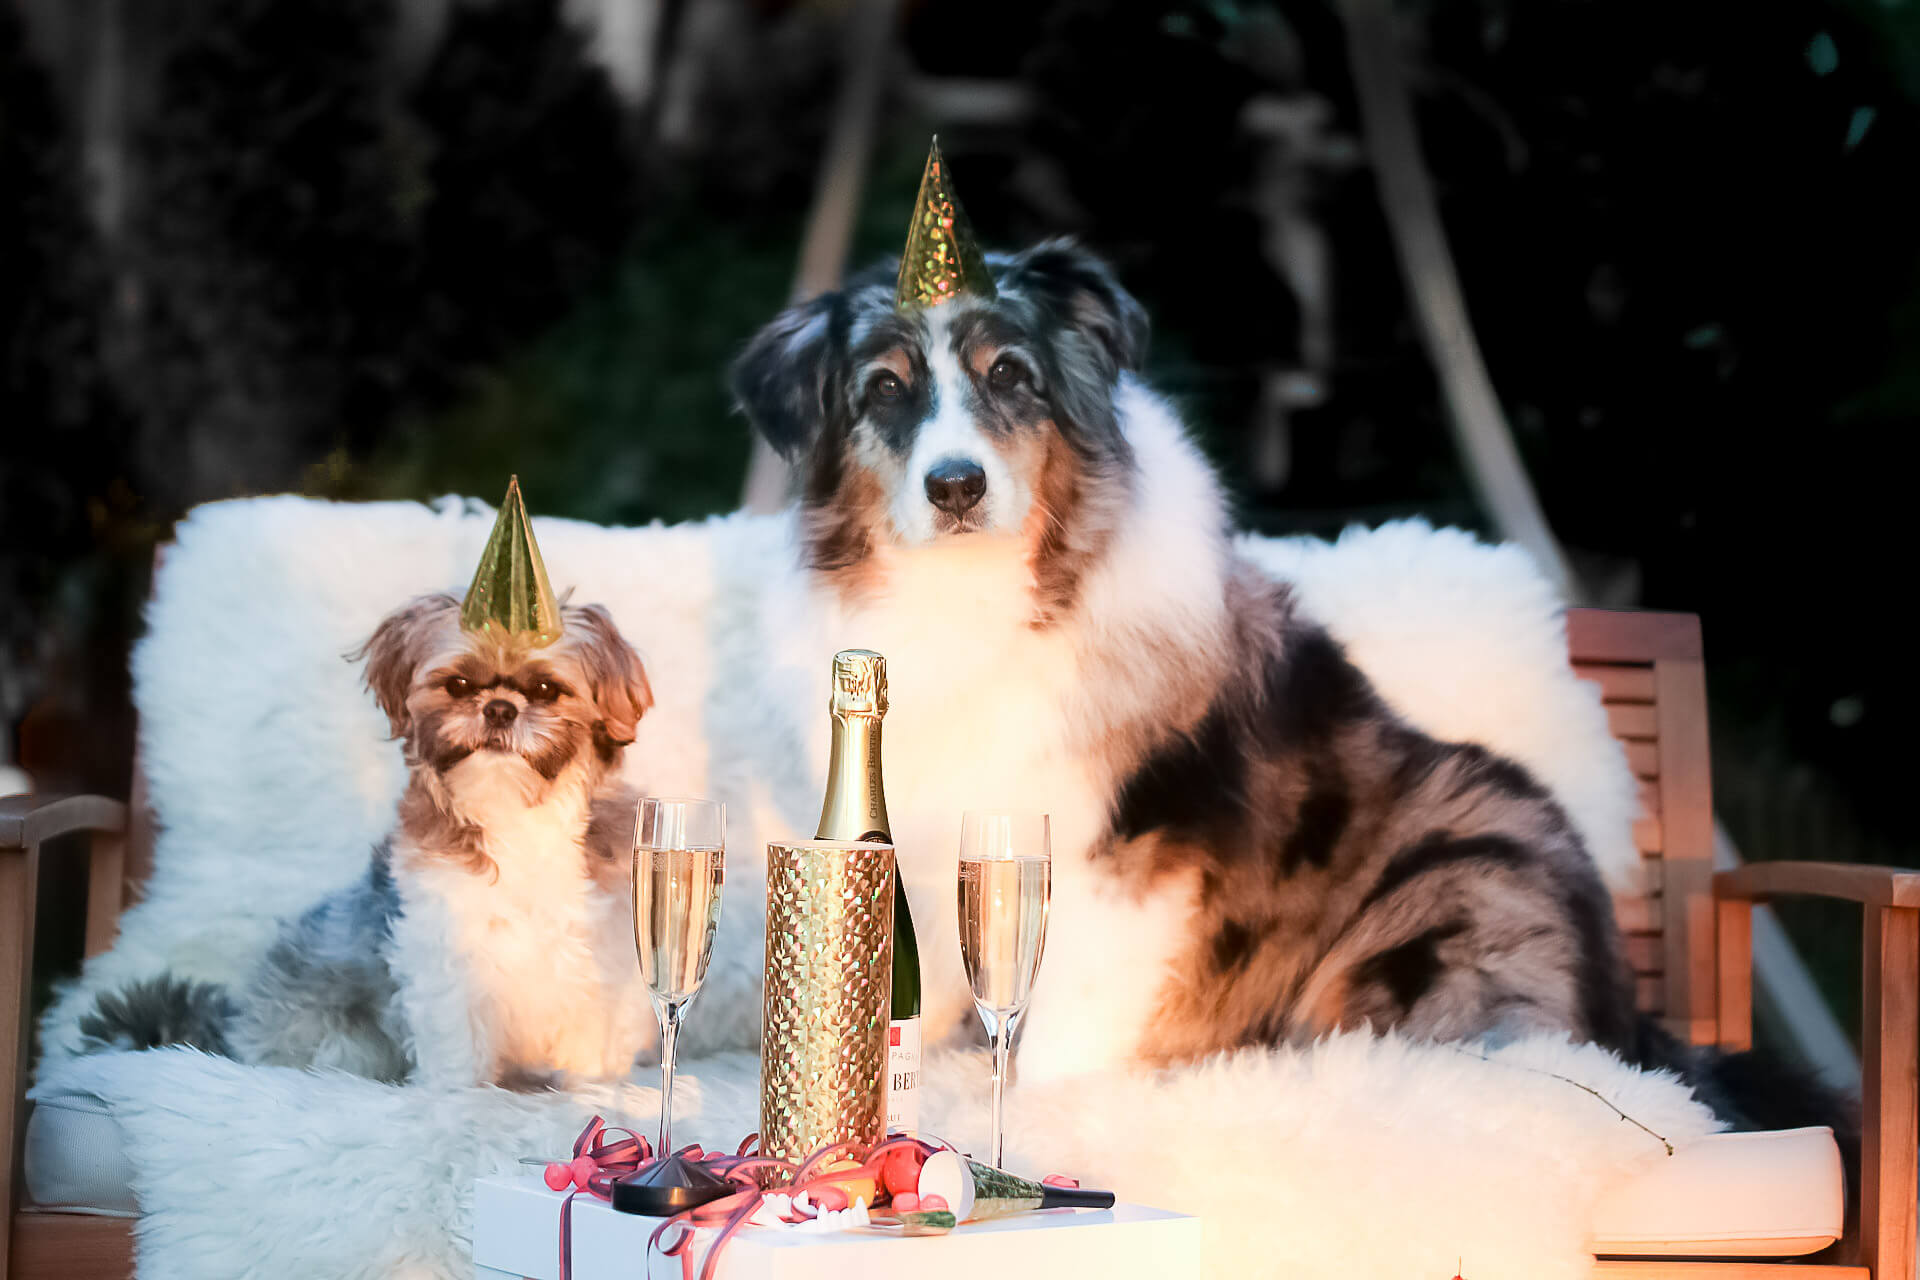 What to do on New Year's Eve with your dog: 5 safety tips